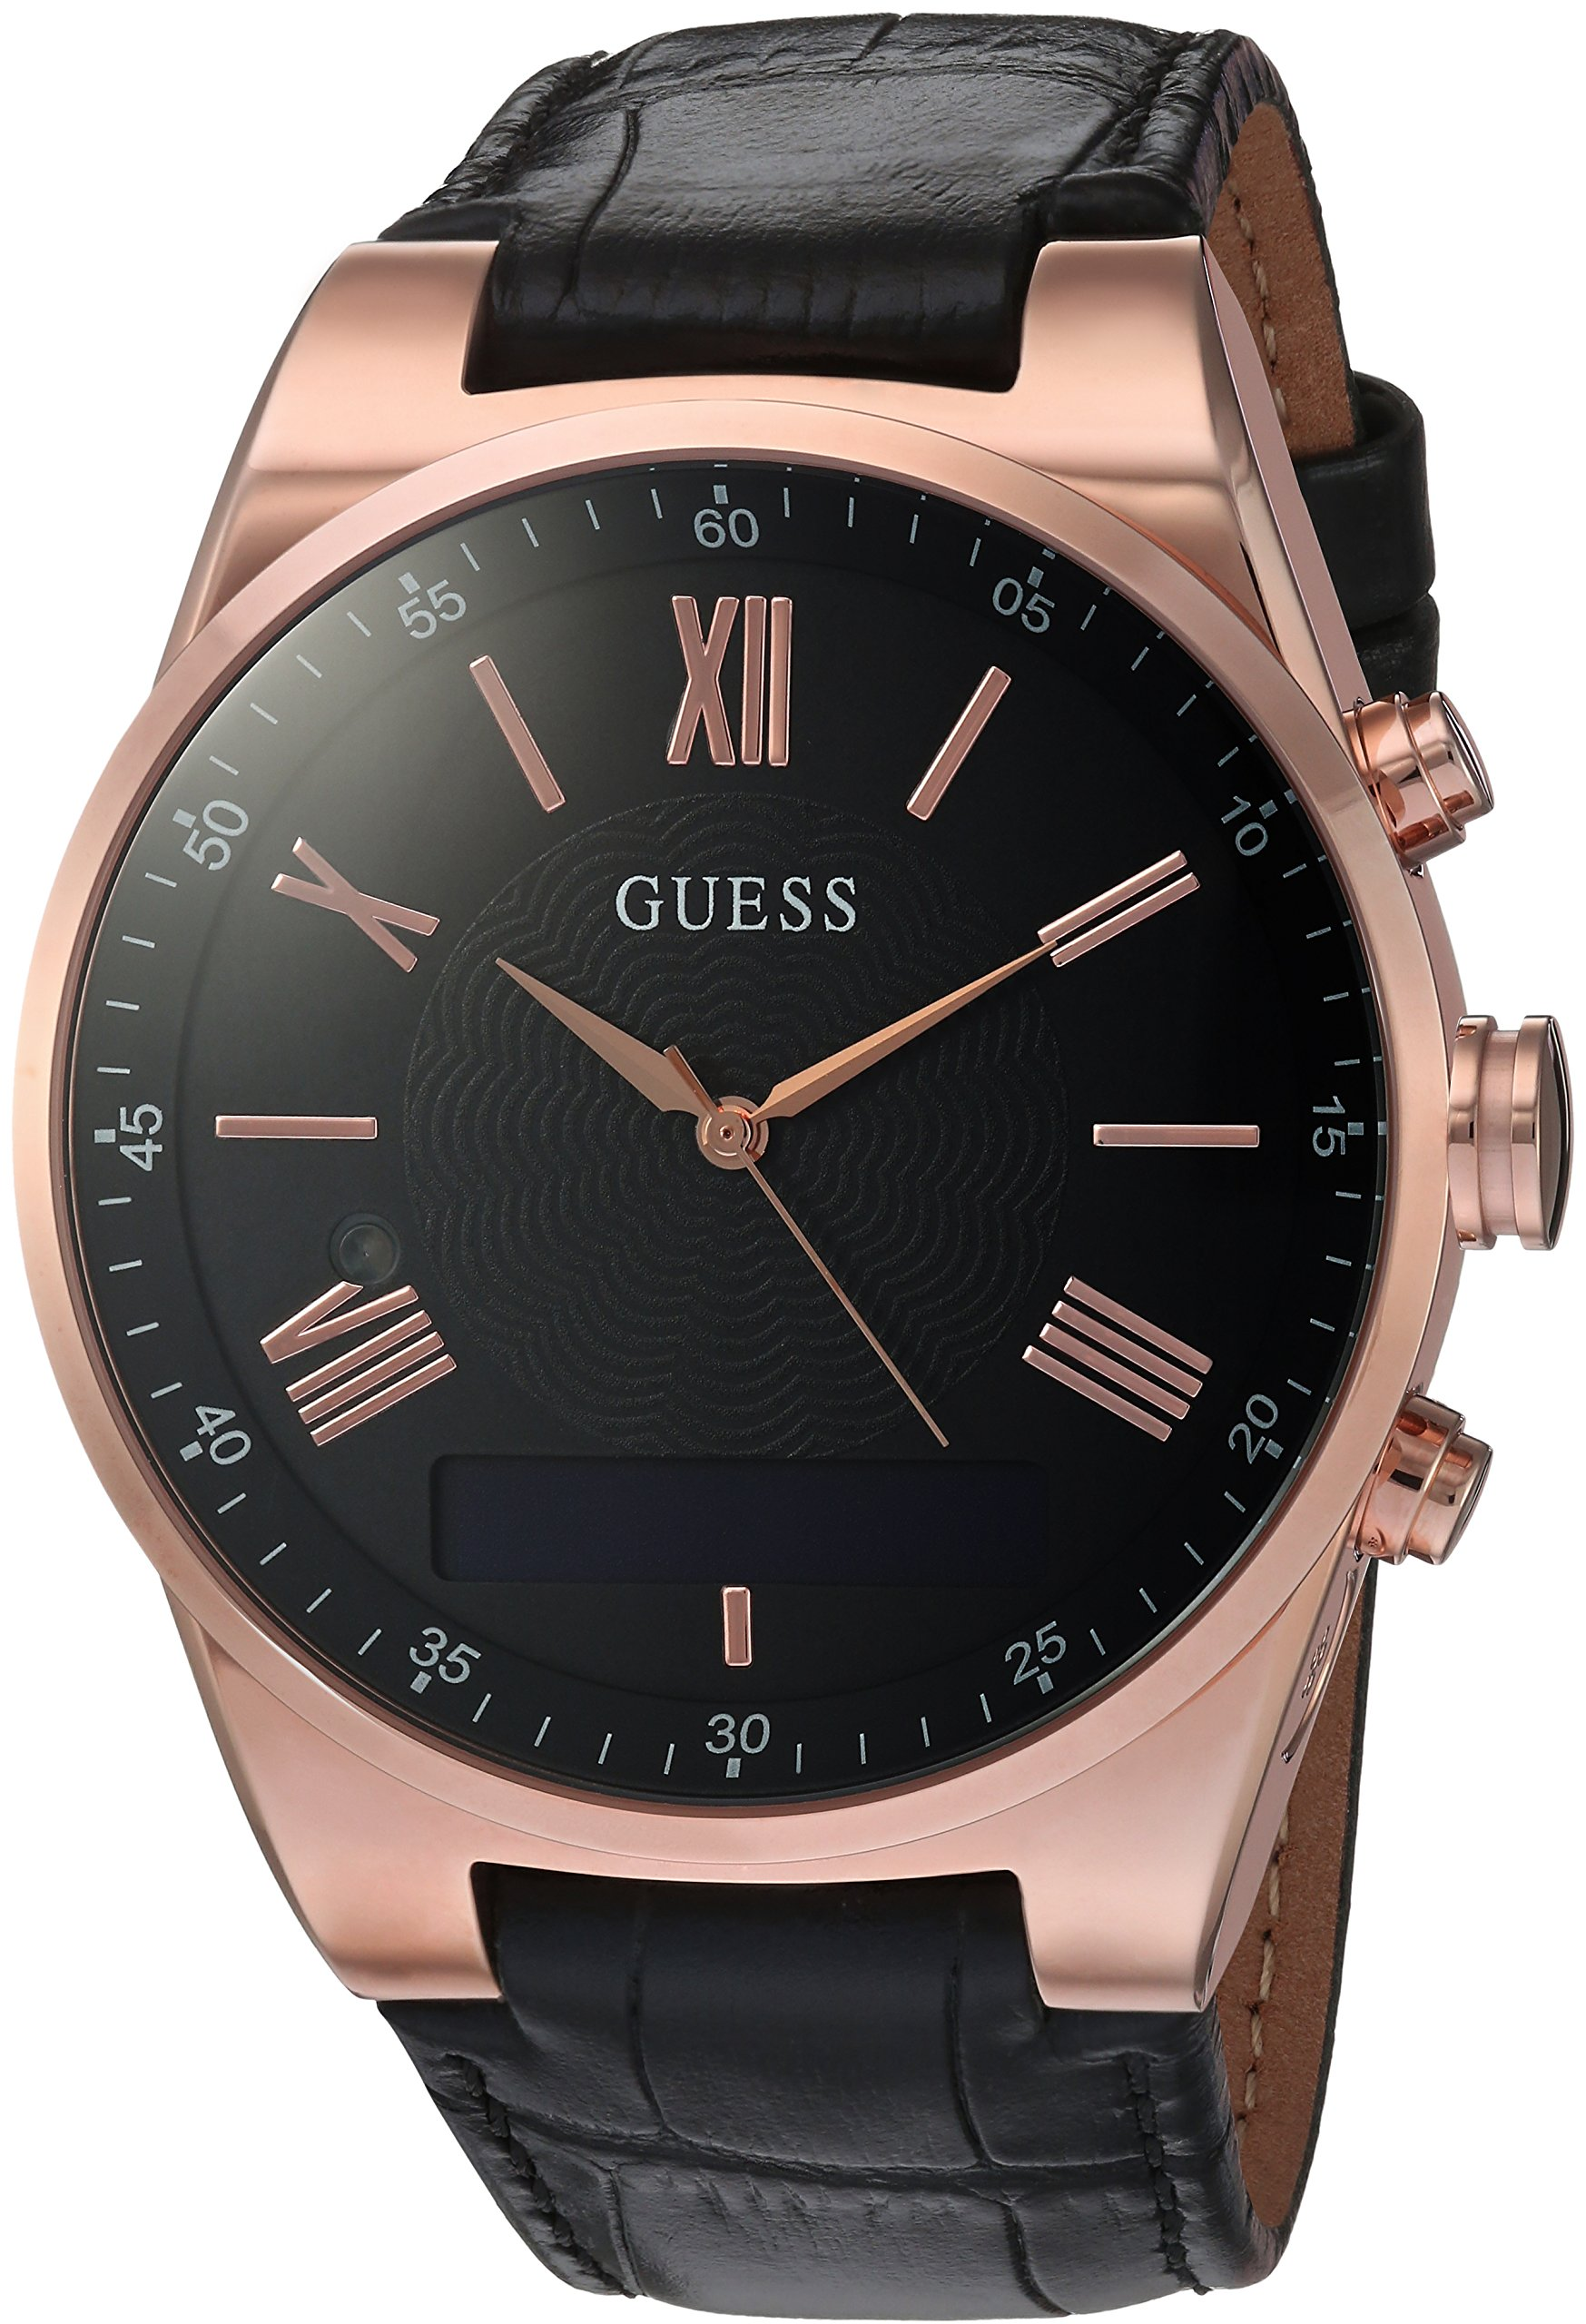 Guess Men's Stainless Steel Connect Smart Watch - Amazon Alexa, iOS and Android Compatible, Color: Black (Model: C0002MB3) by GUESS